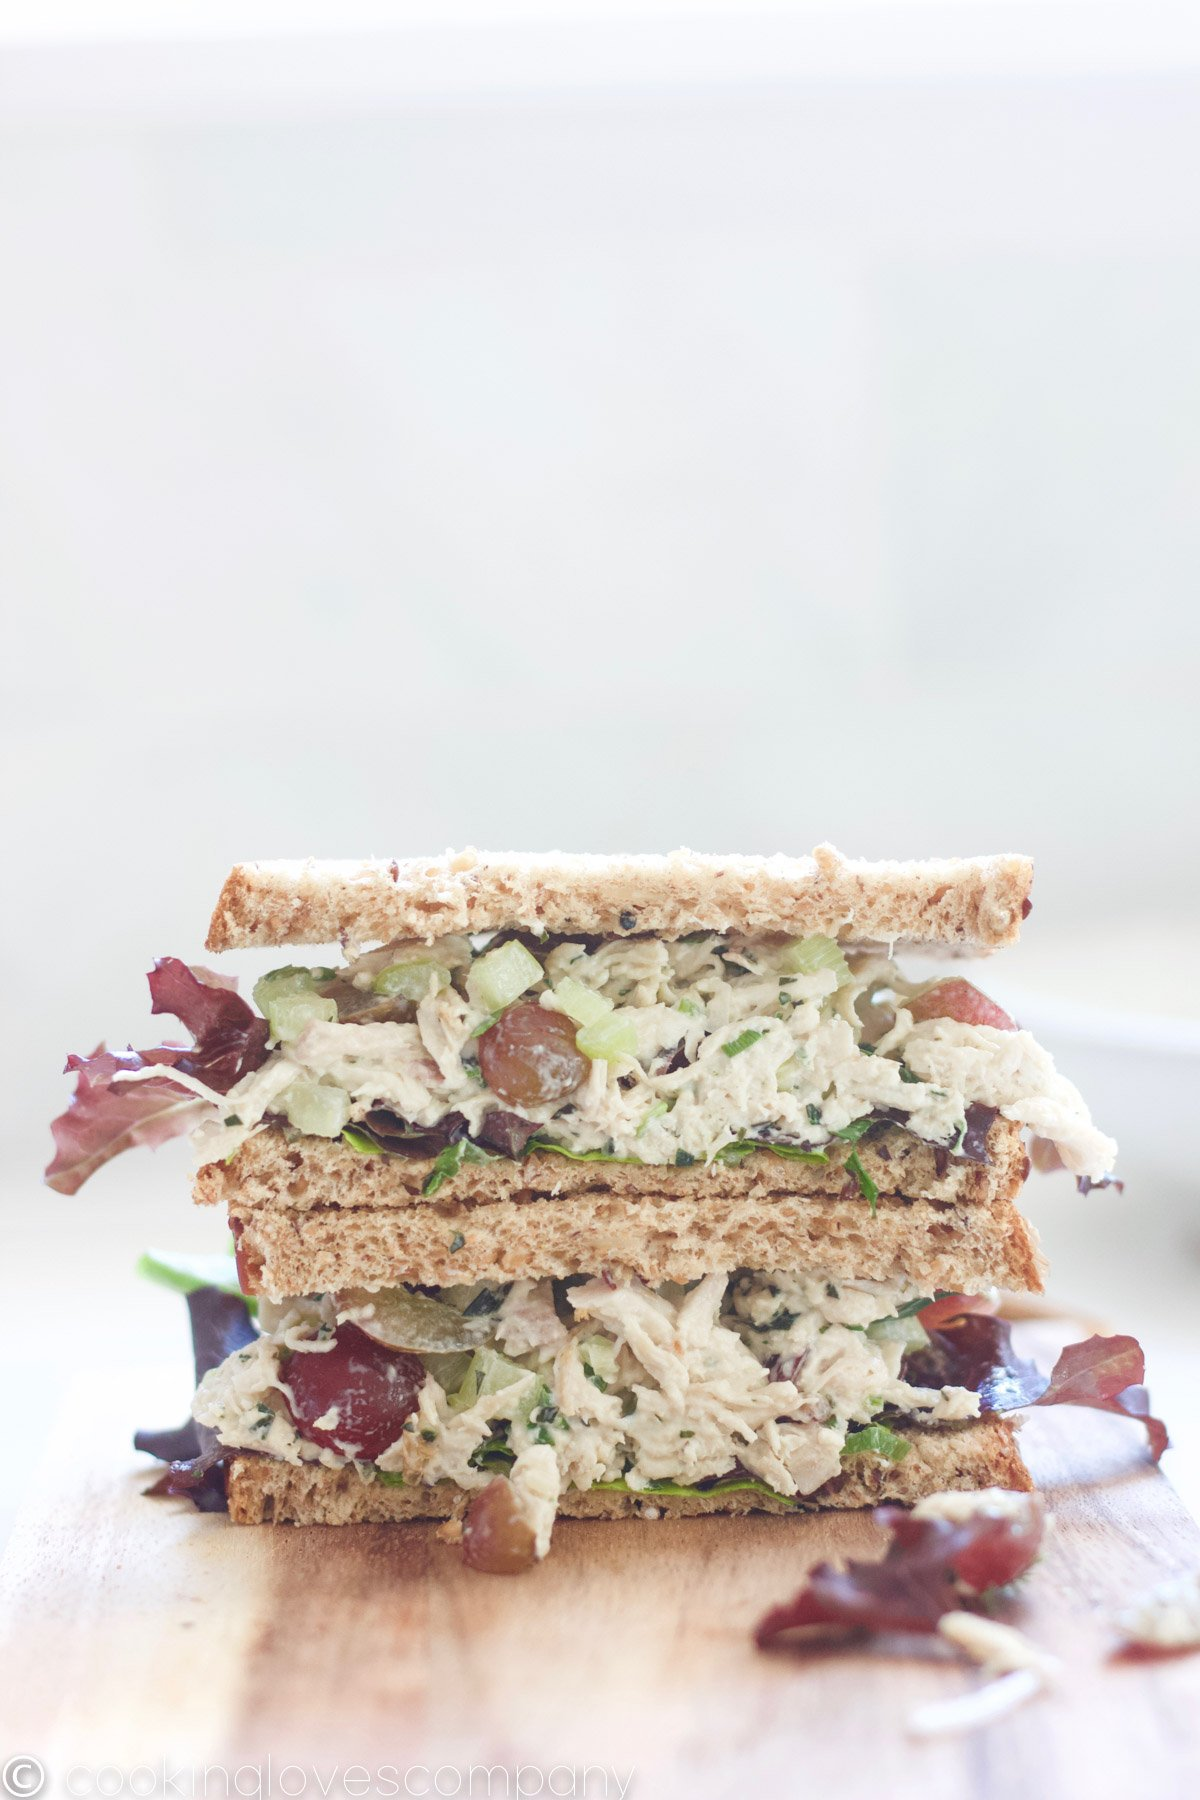 A tarragon chicken salad sandwich sliced in half and stacked, sitting on a wooden cutting board.